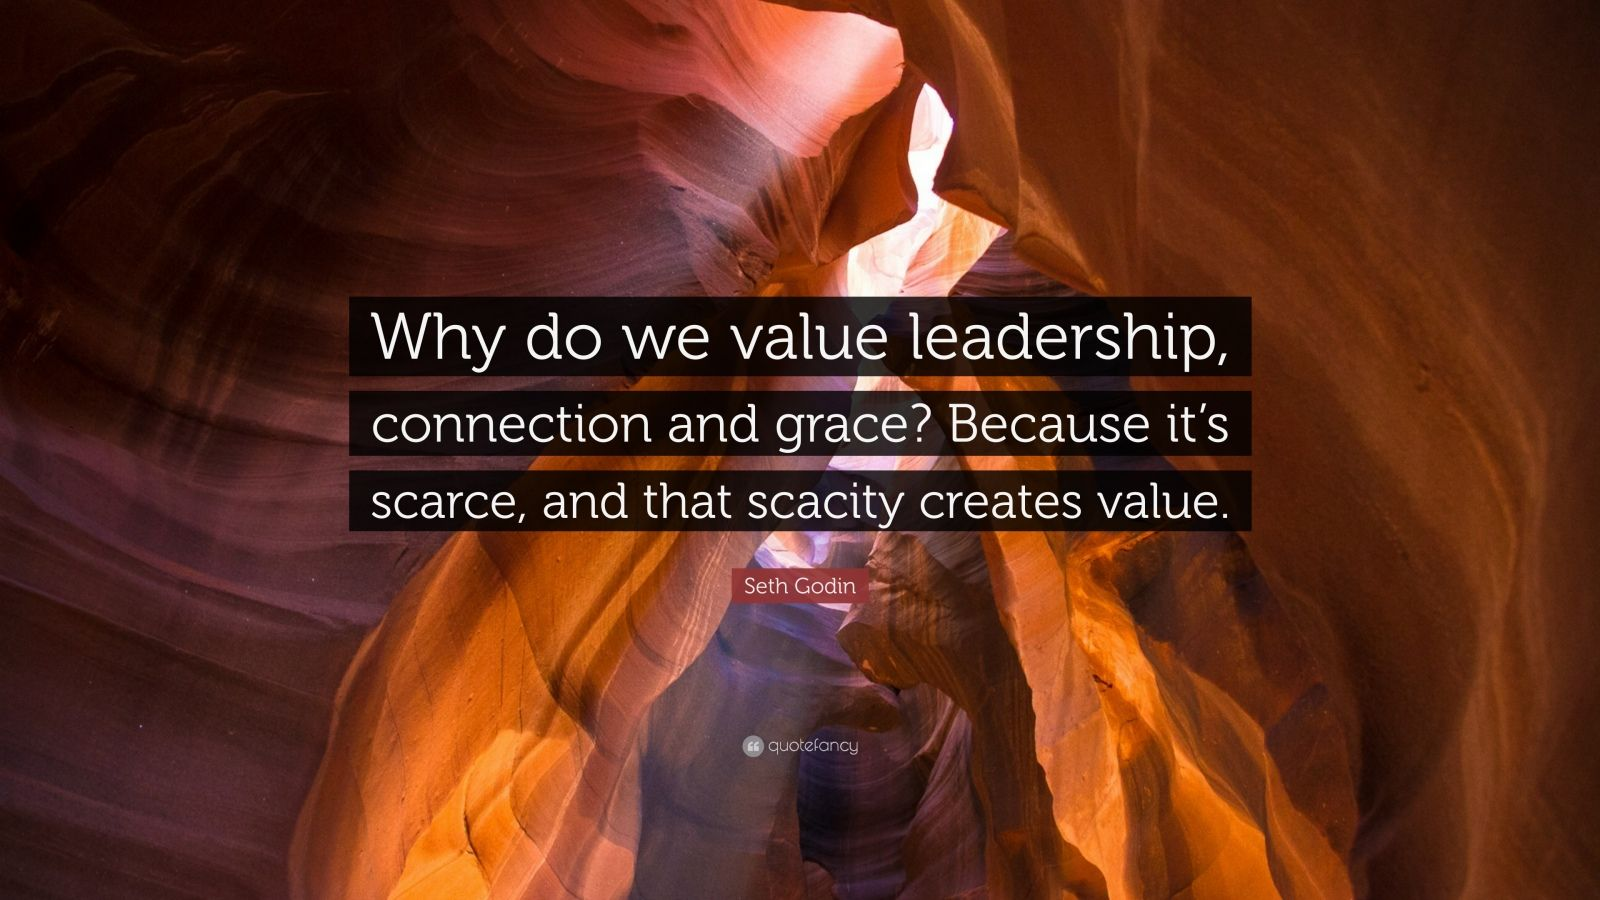 """Seth Godin Quote: """"Why do we value leadership, connection and grace? Because it's scarce, and that scacity creates value."""""""